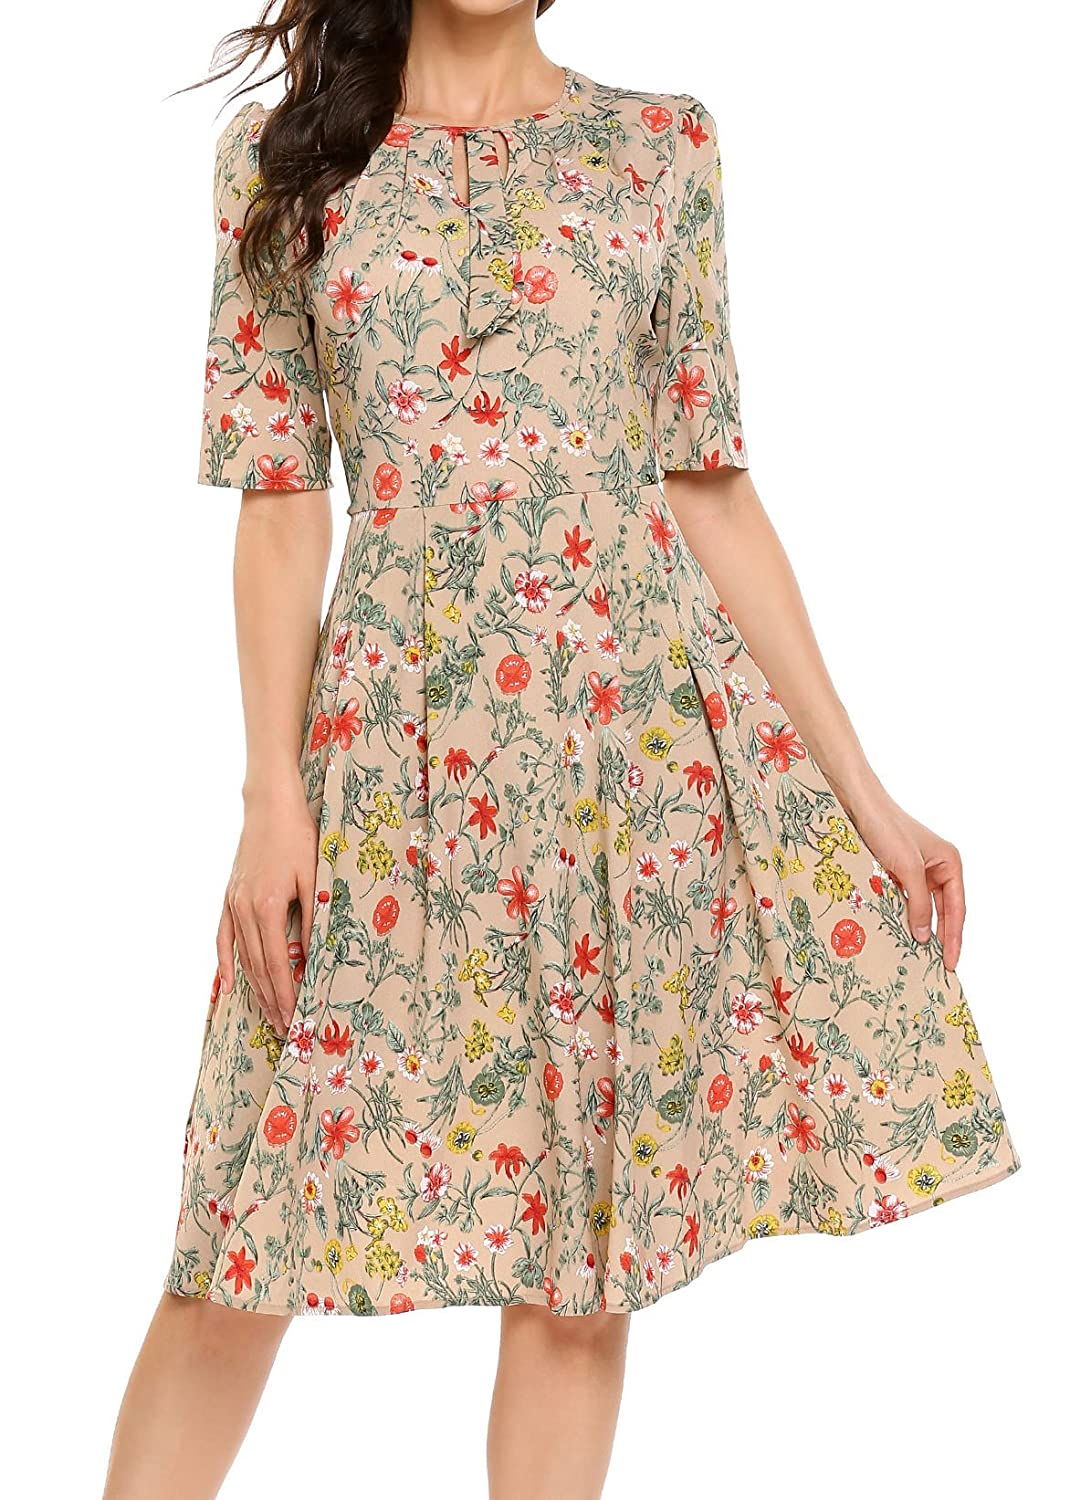 Agent Peggy Carter Costume, Dress, Hats Casual Short Sleeve Floral Printed Fit and Flare Party Dress ACEVOG Womens $30.79 AT vintagedancer.com